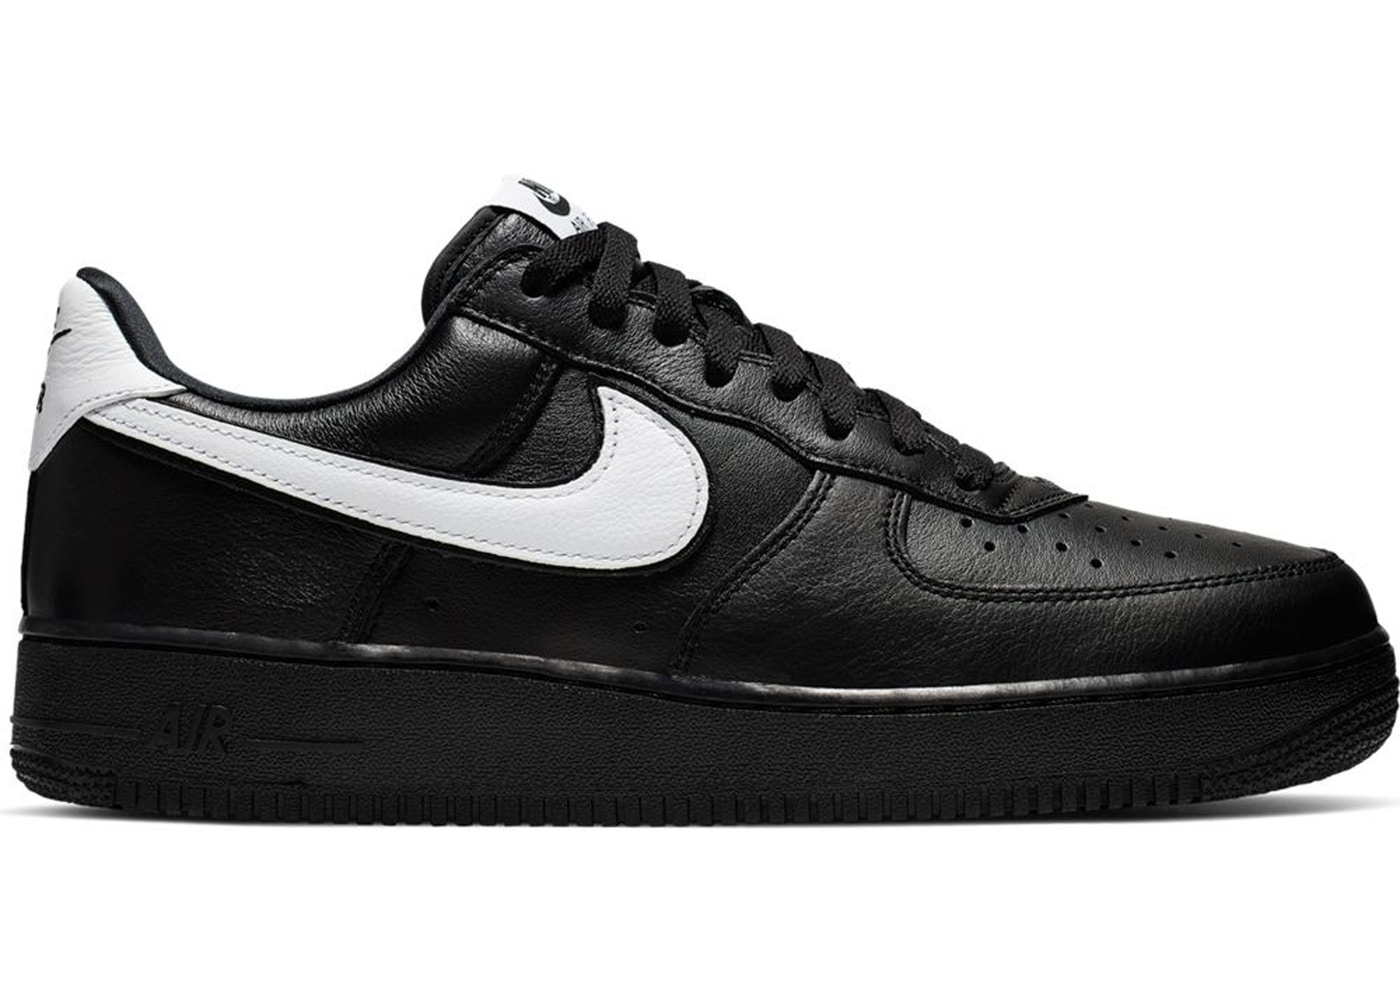 Now Available: Nike Air Force 1 Low QS